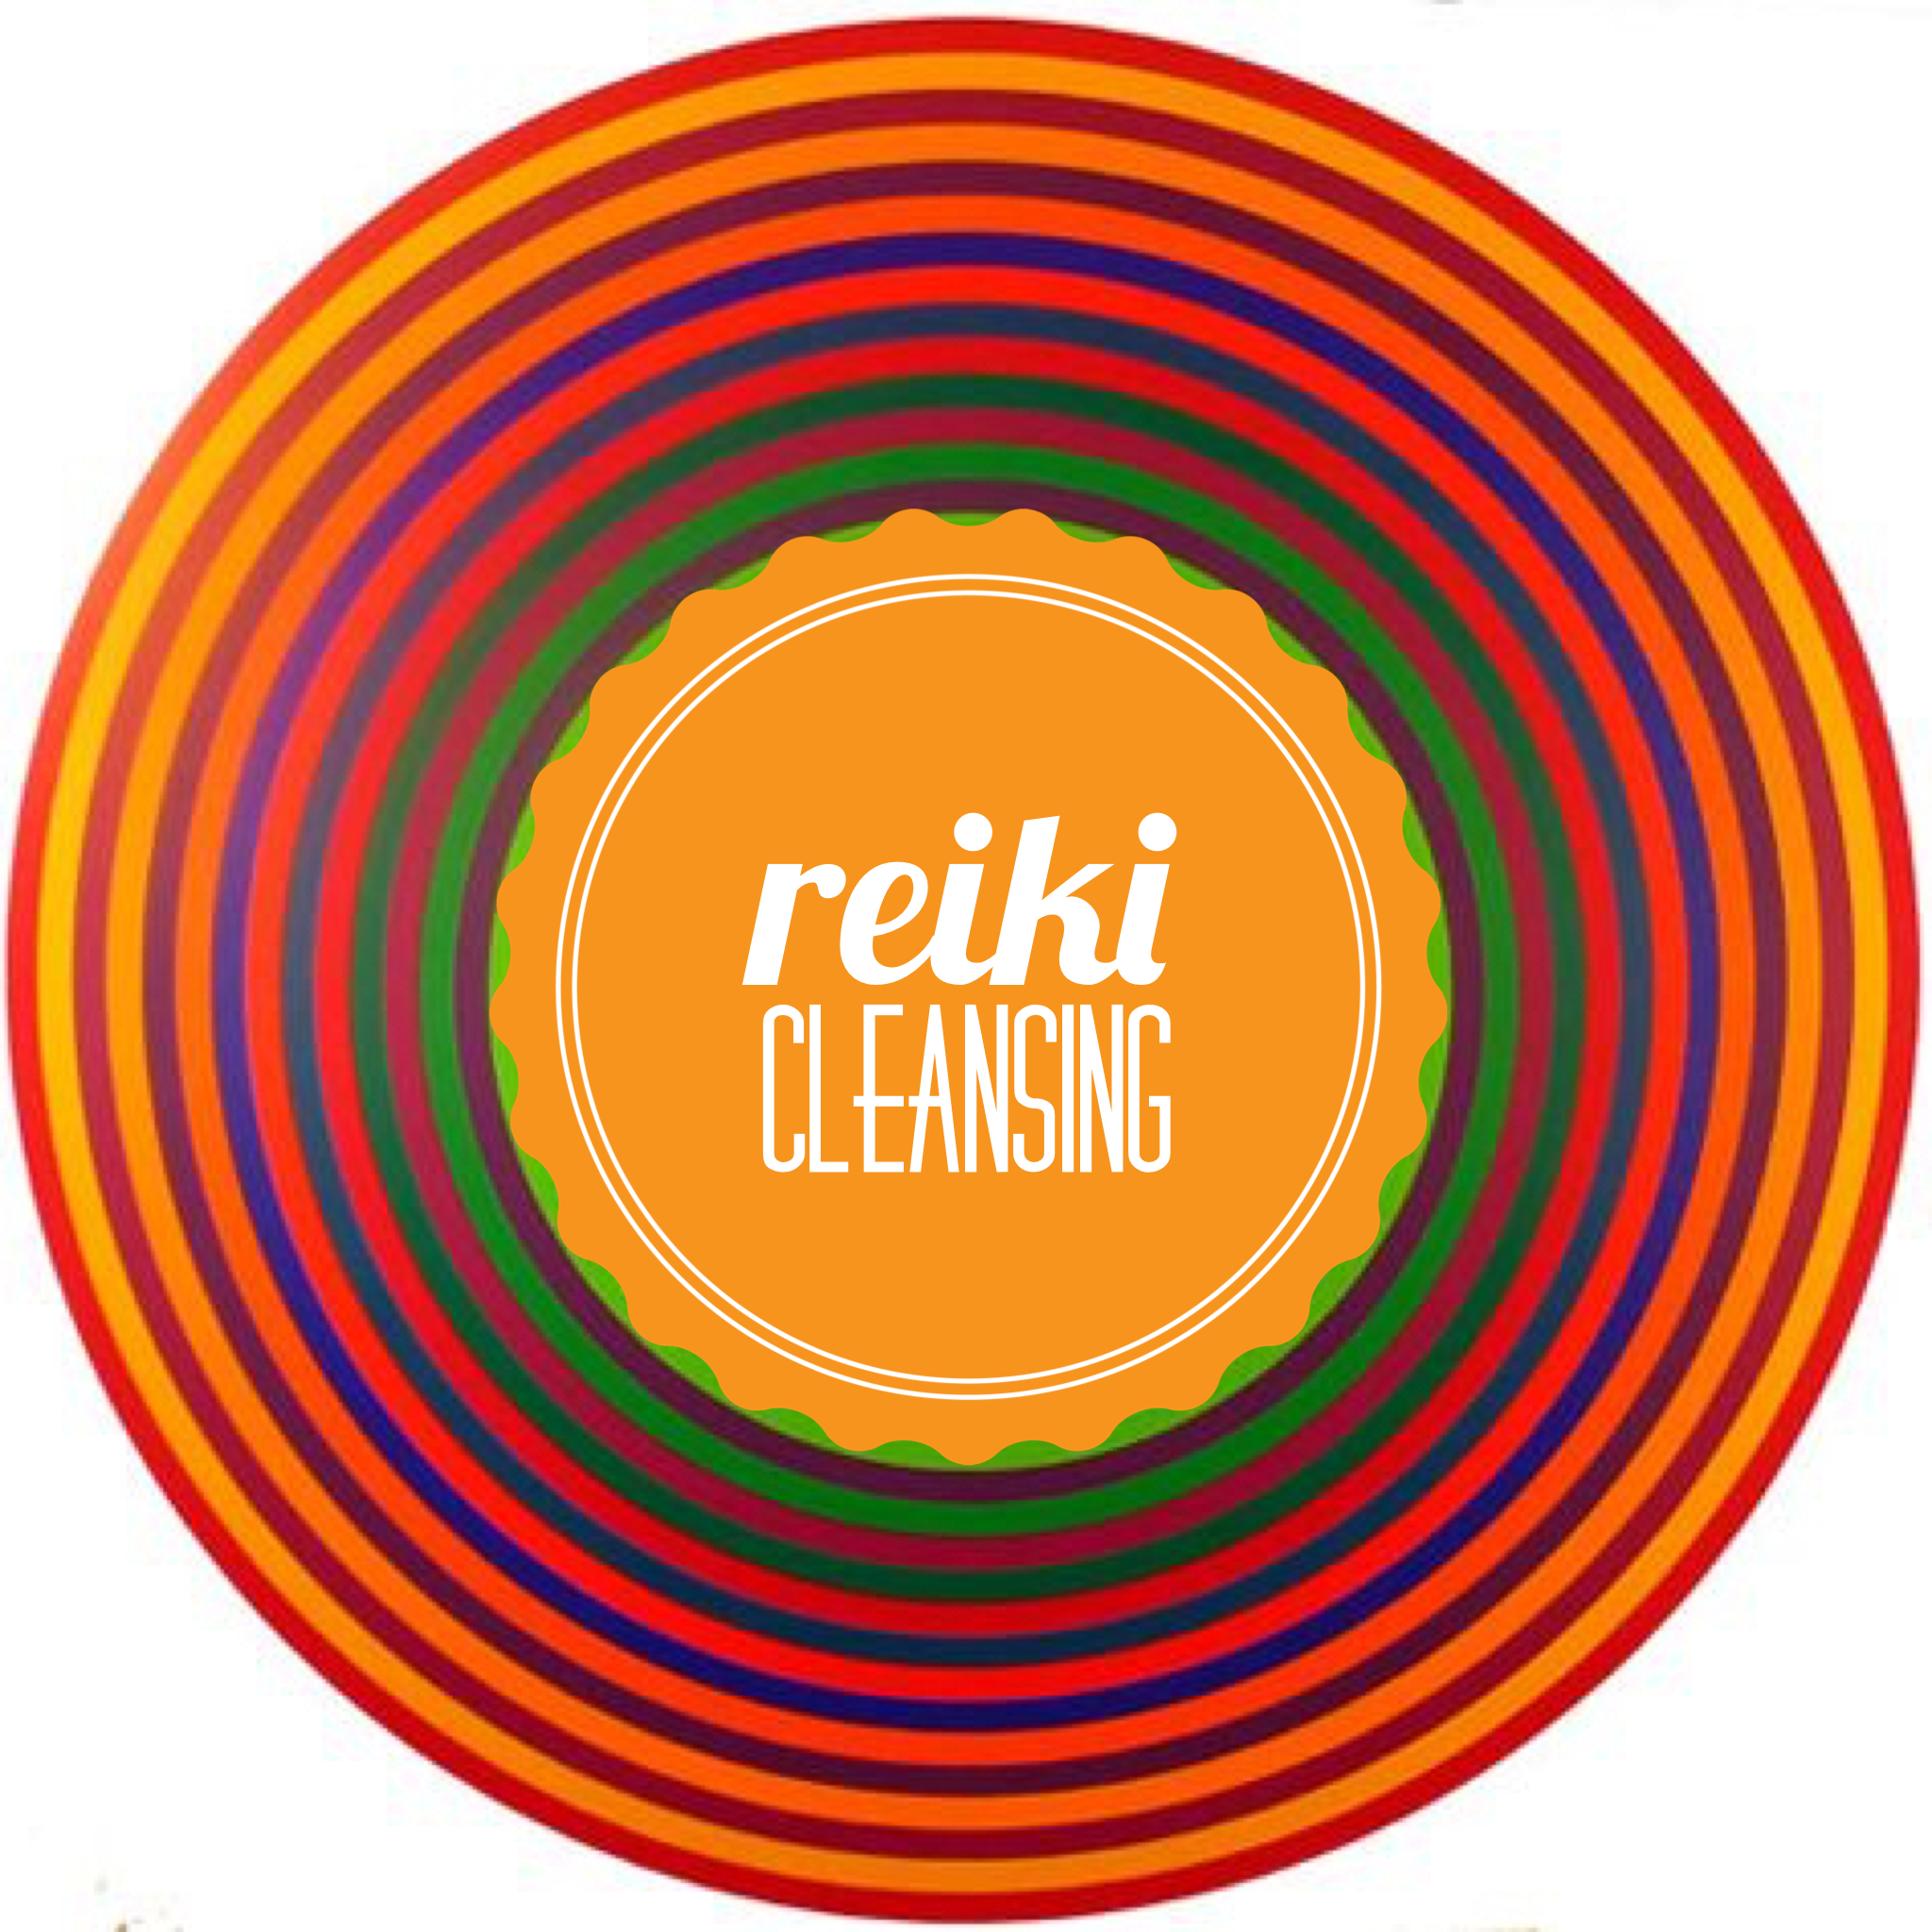 Reiki Cleansing